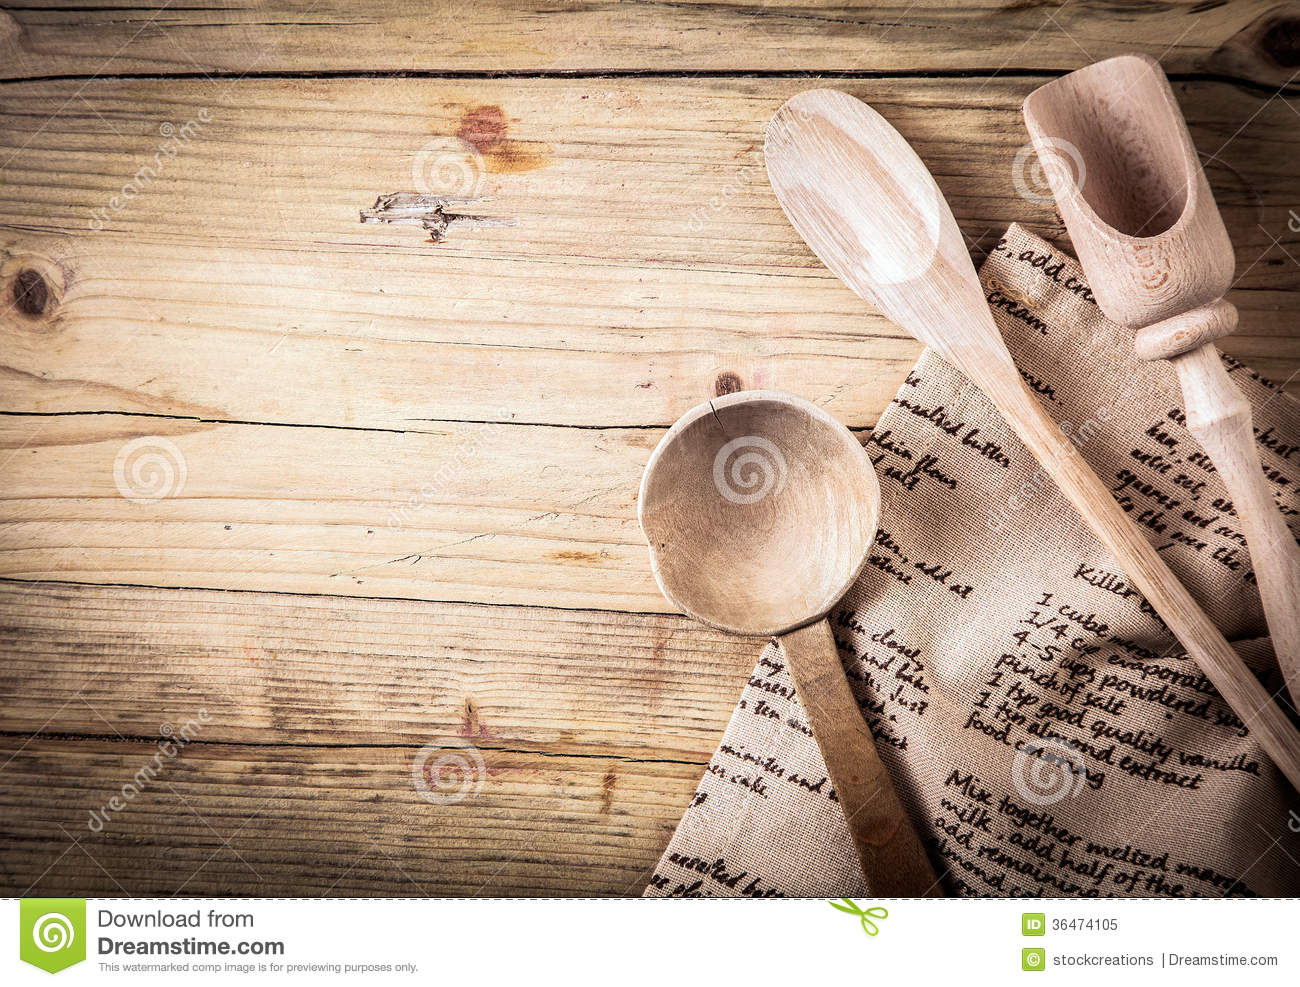 Rustic Cooking Utensils With A Recipe Royalty Free Stock